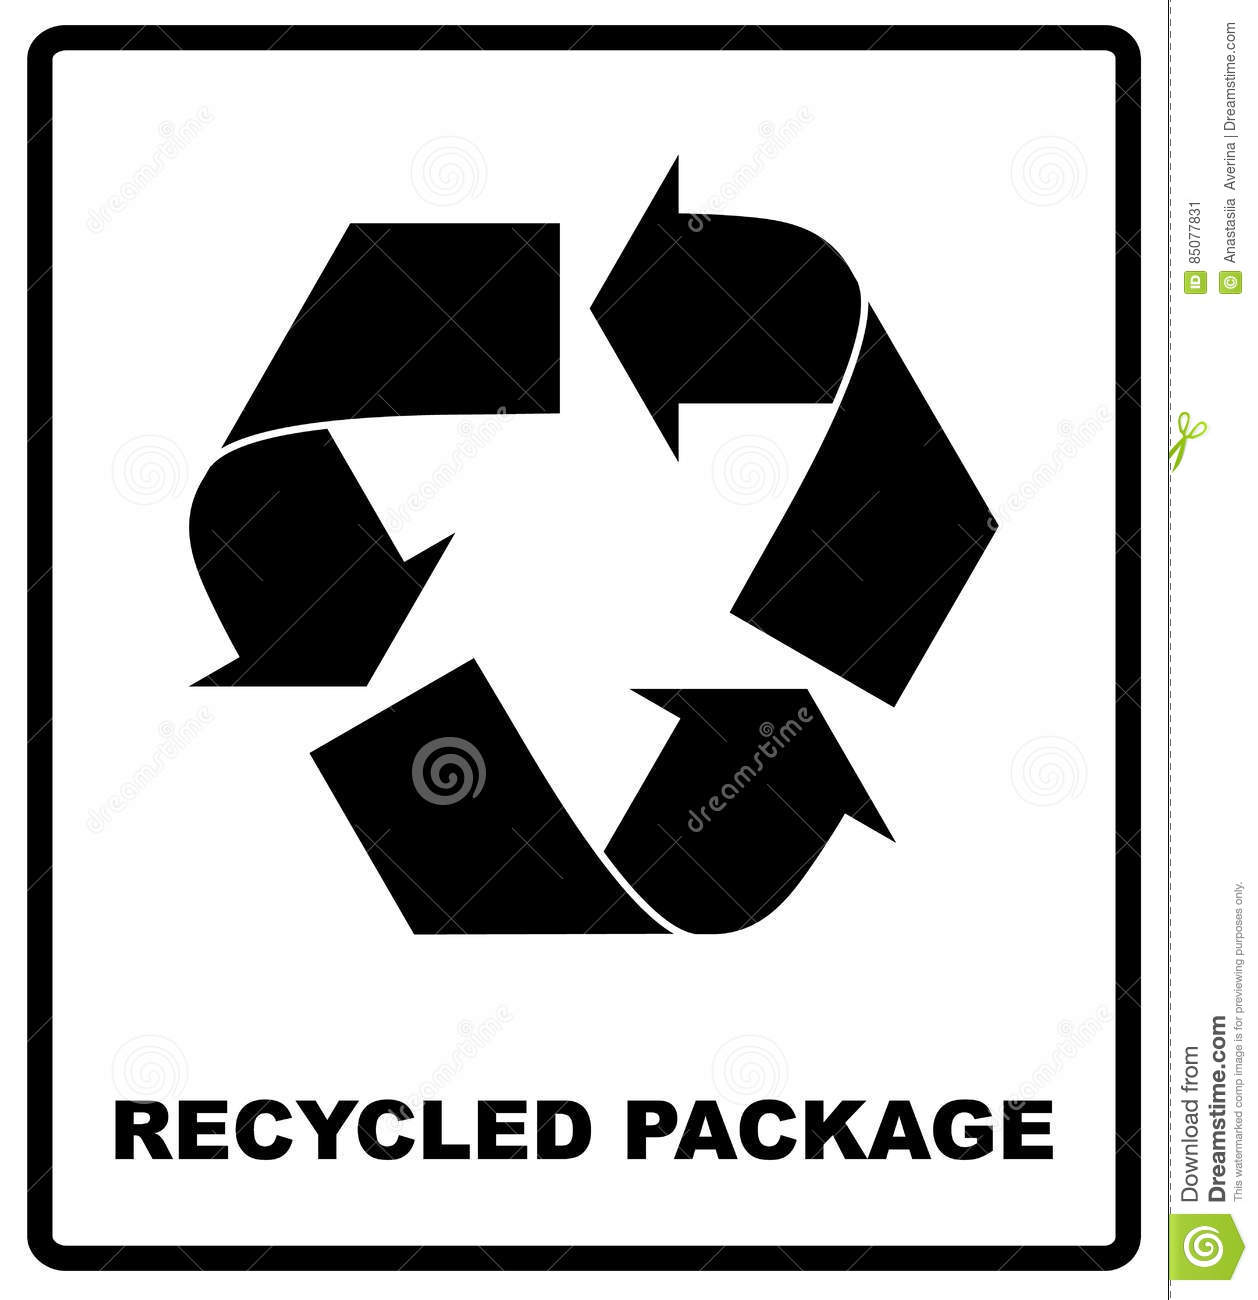 Recycled package symbol or sign of conservation black icon isolated recycled package symbol or sign of conservation black icon isolated on white background vector symbol on the packaging buycottarizona Images